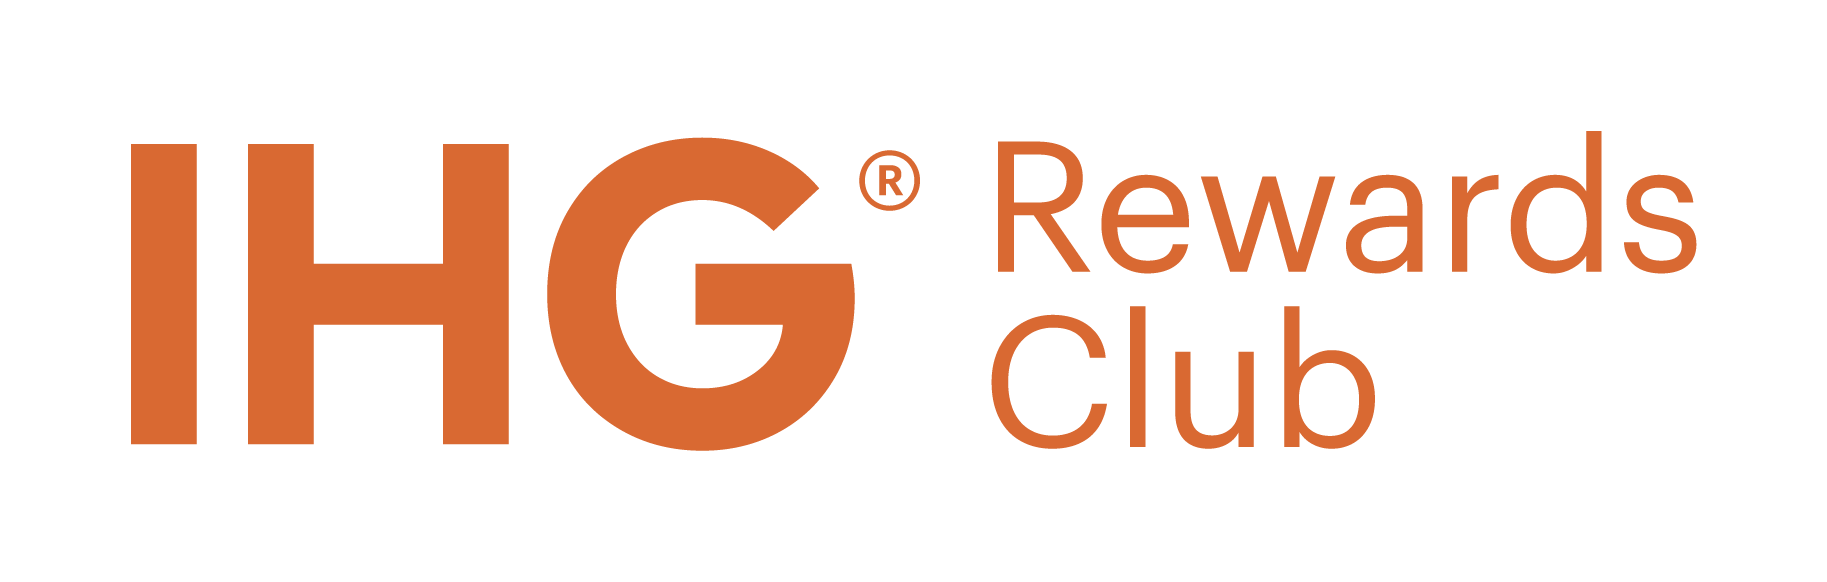 Win one million IHG rewards club points